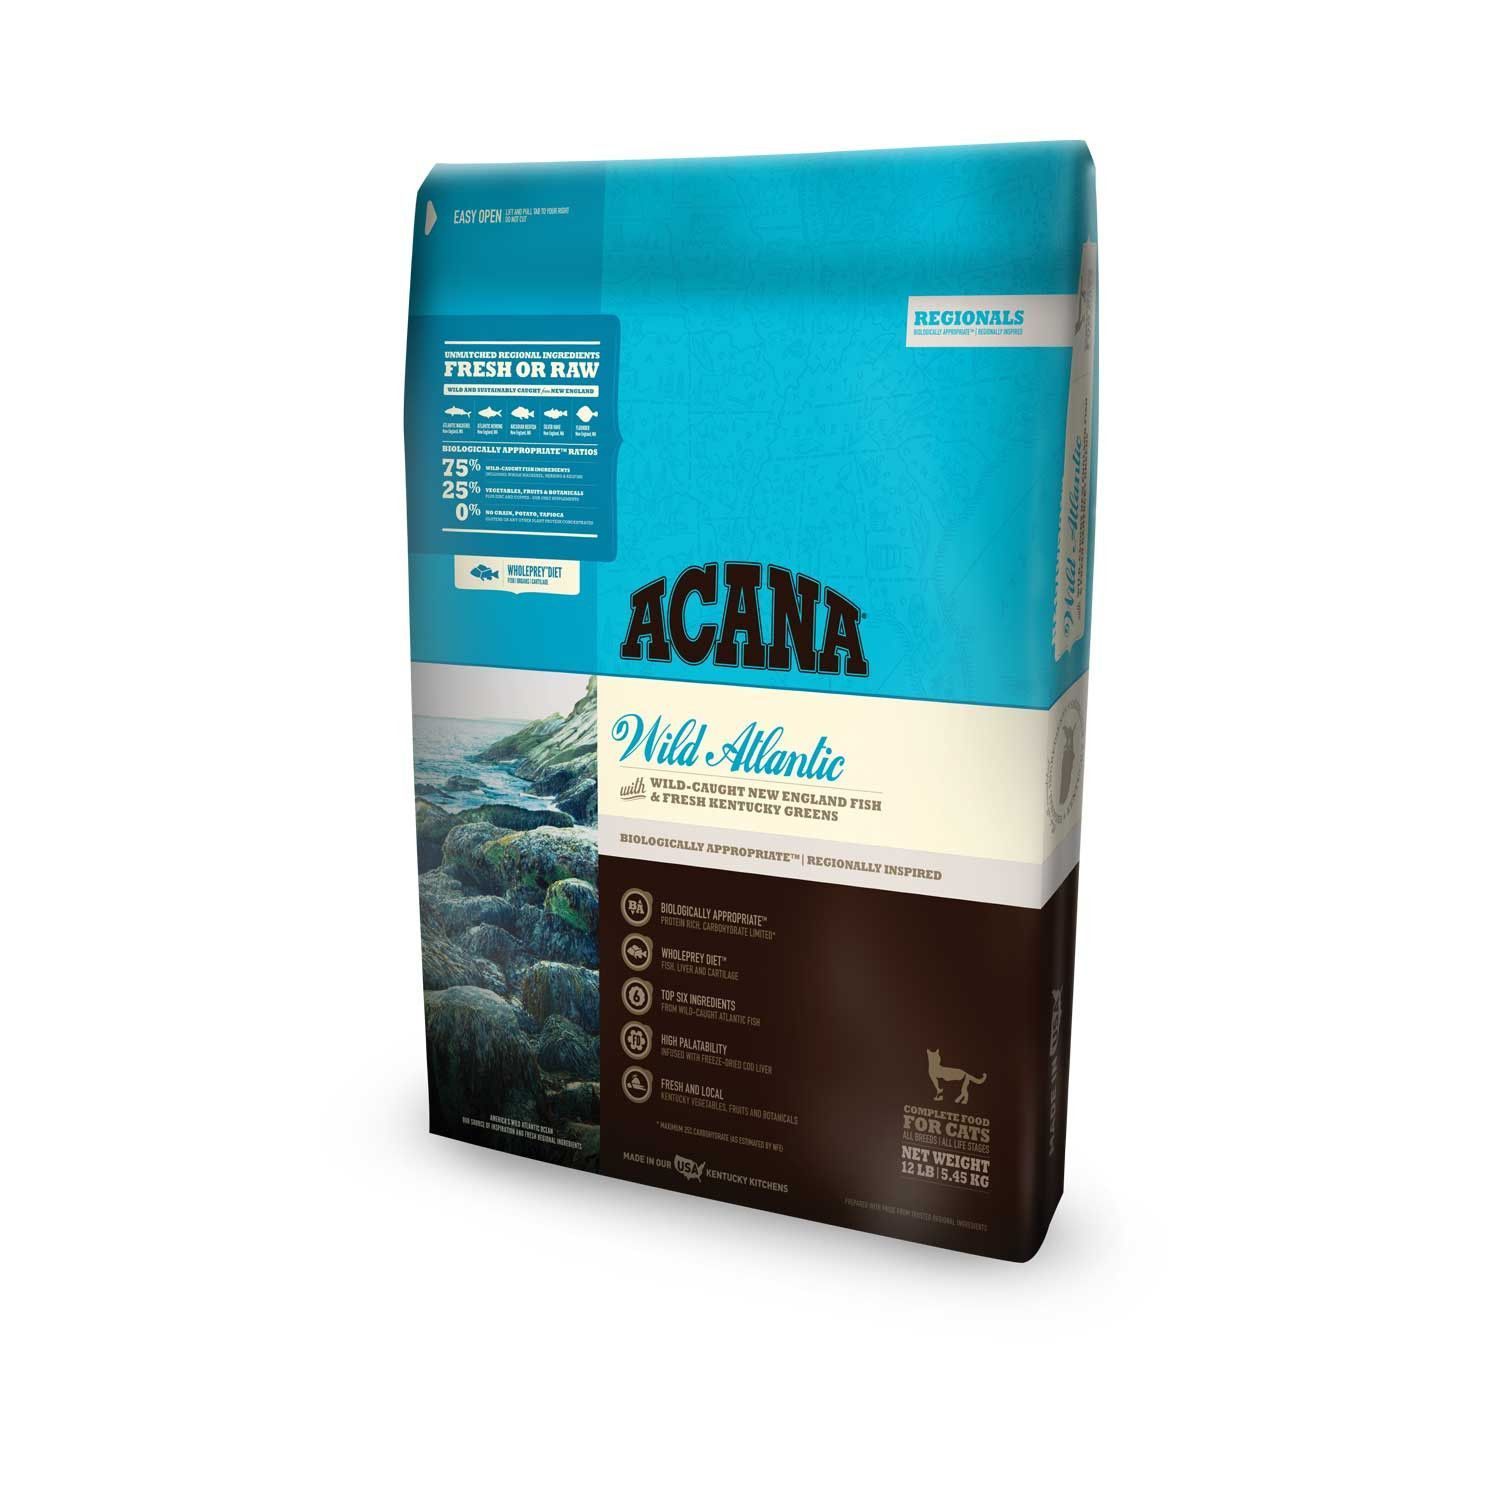 Acana Cat Food Regionals Wild Atlantic Cat Kitten Dry Dog